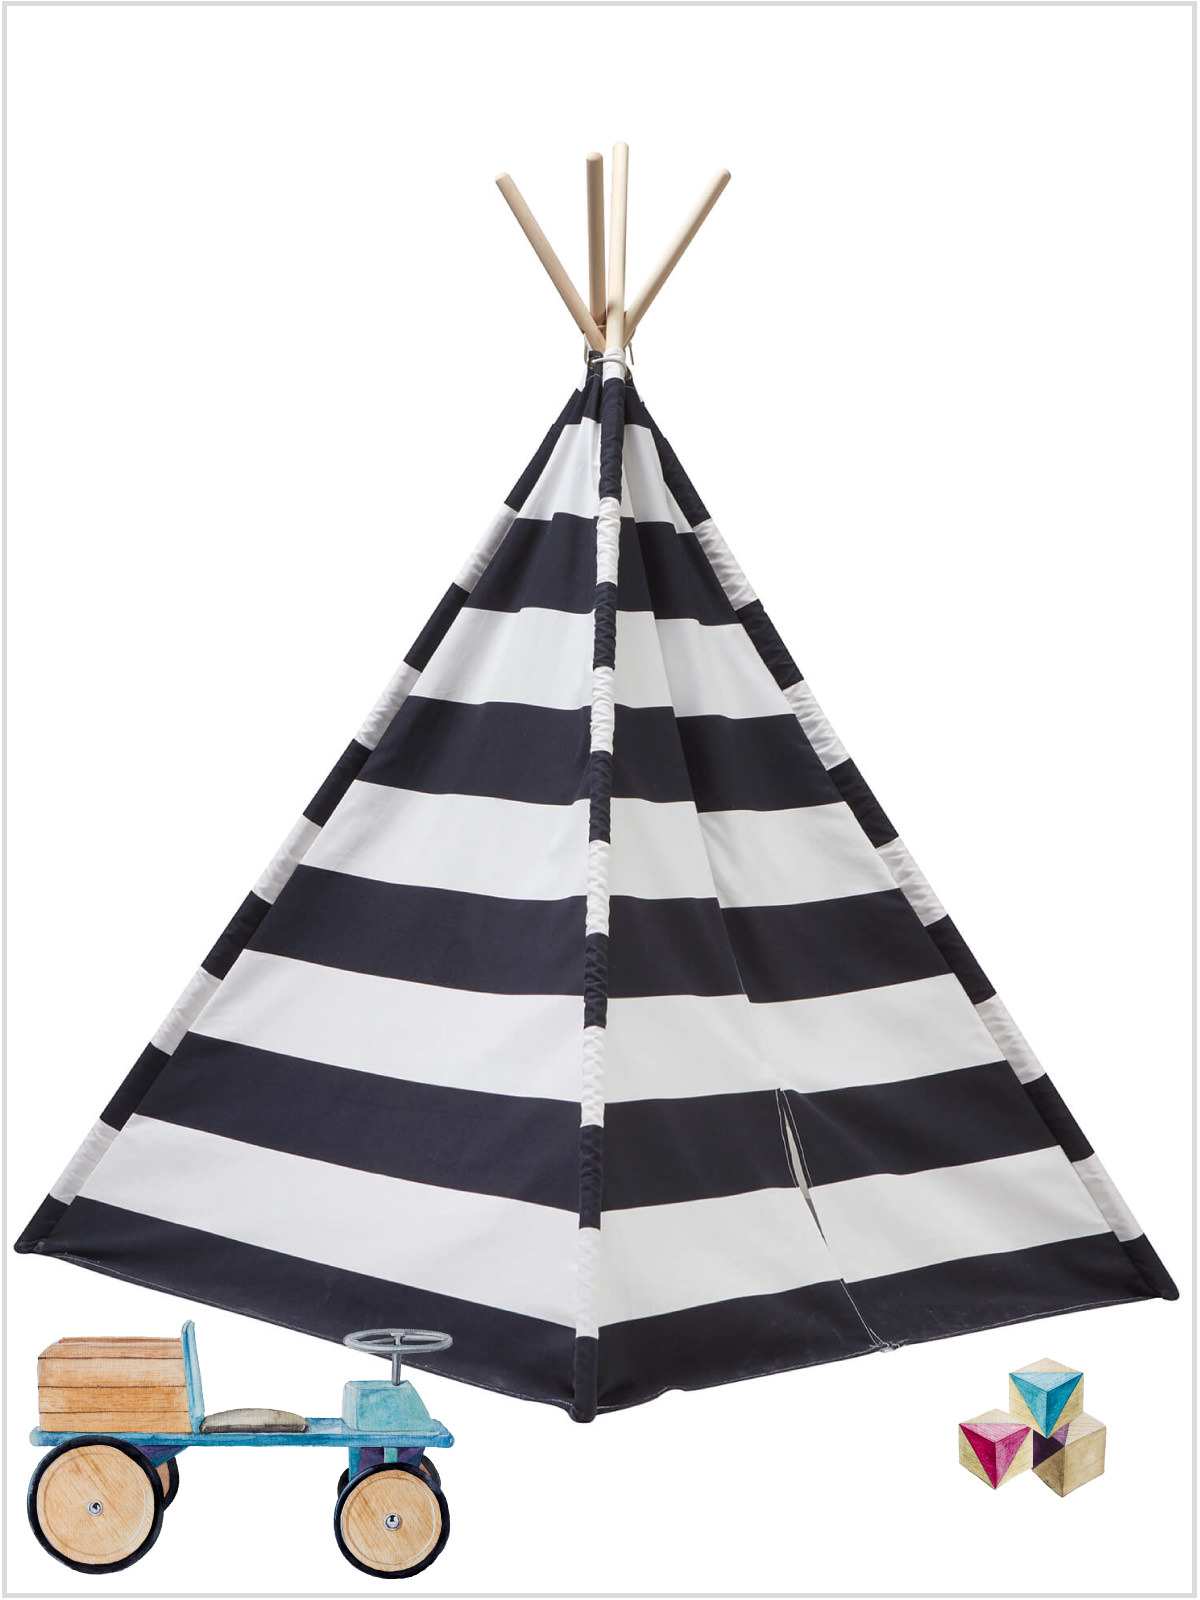 frederickandsophie-toys-kidsconcept-teepee-tent